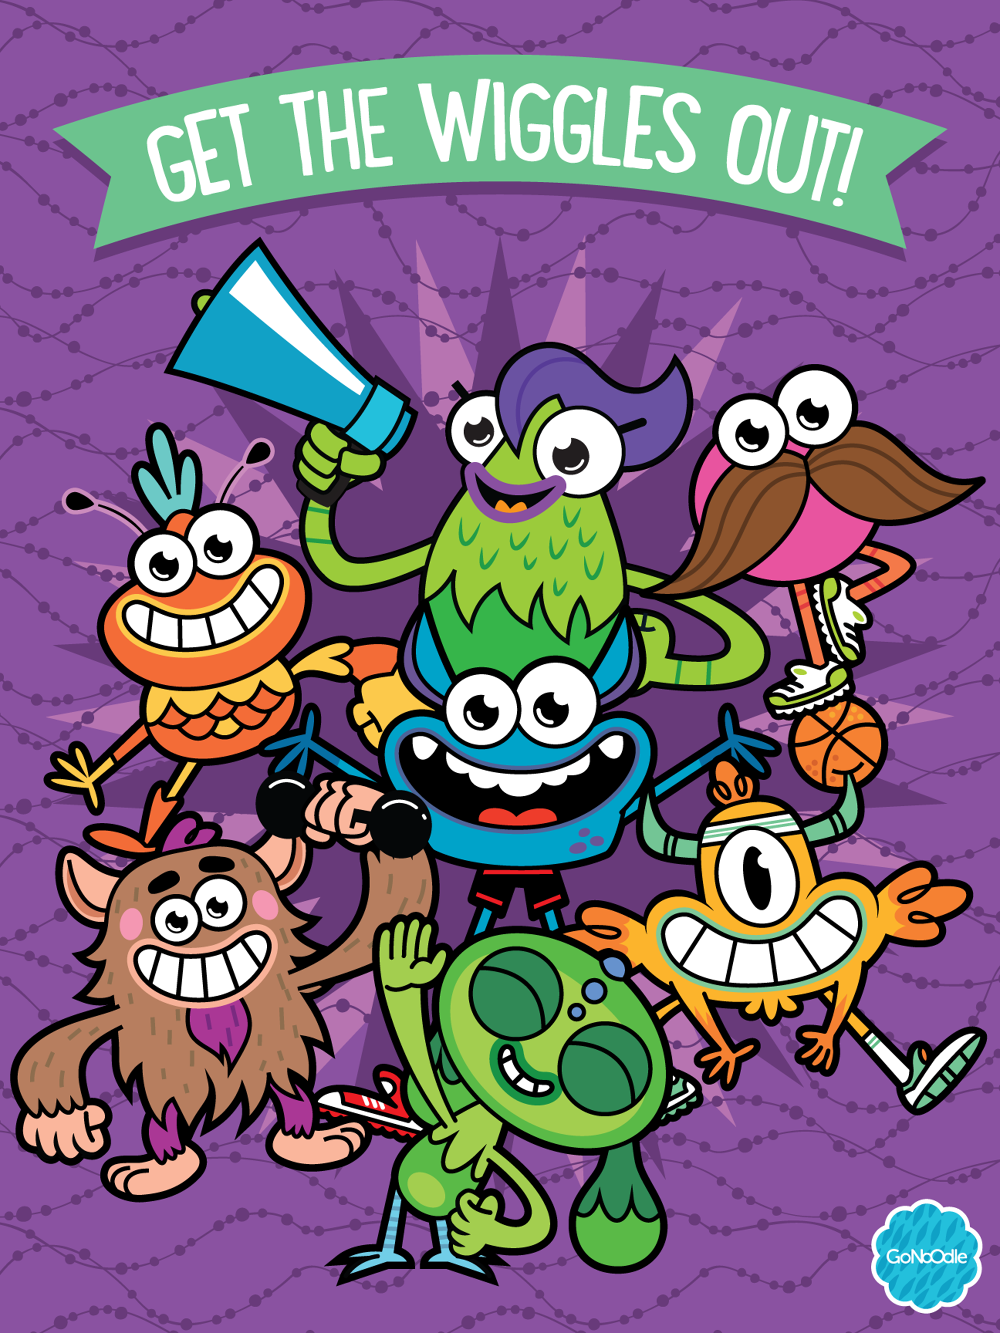 GoNoodle - Miguel Camilo - Illustration & Design